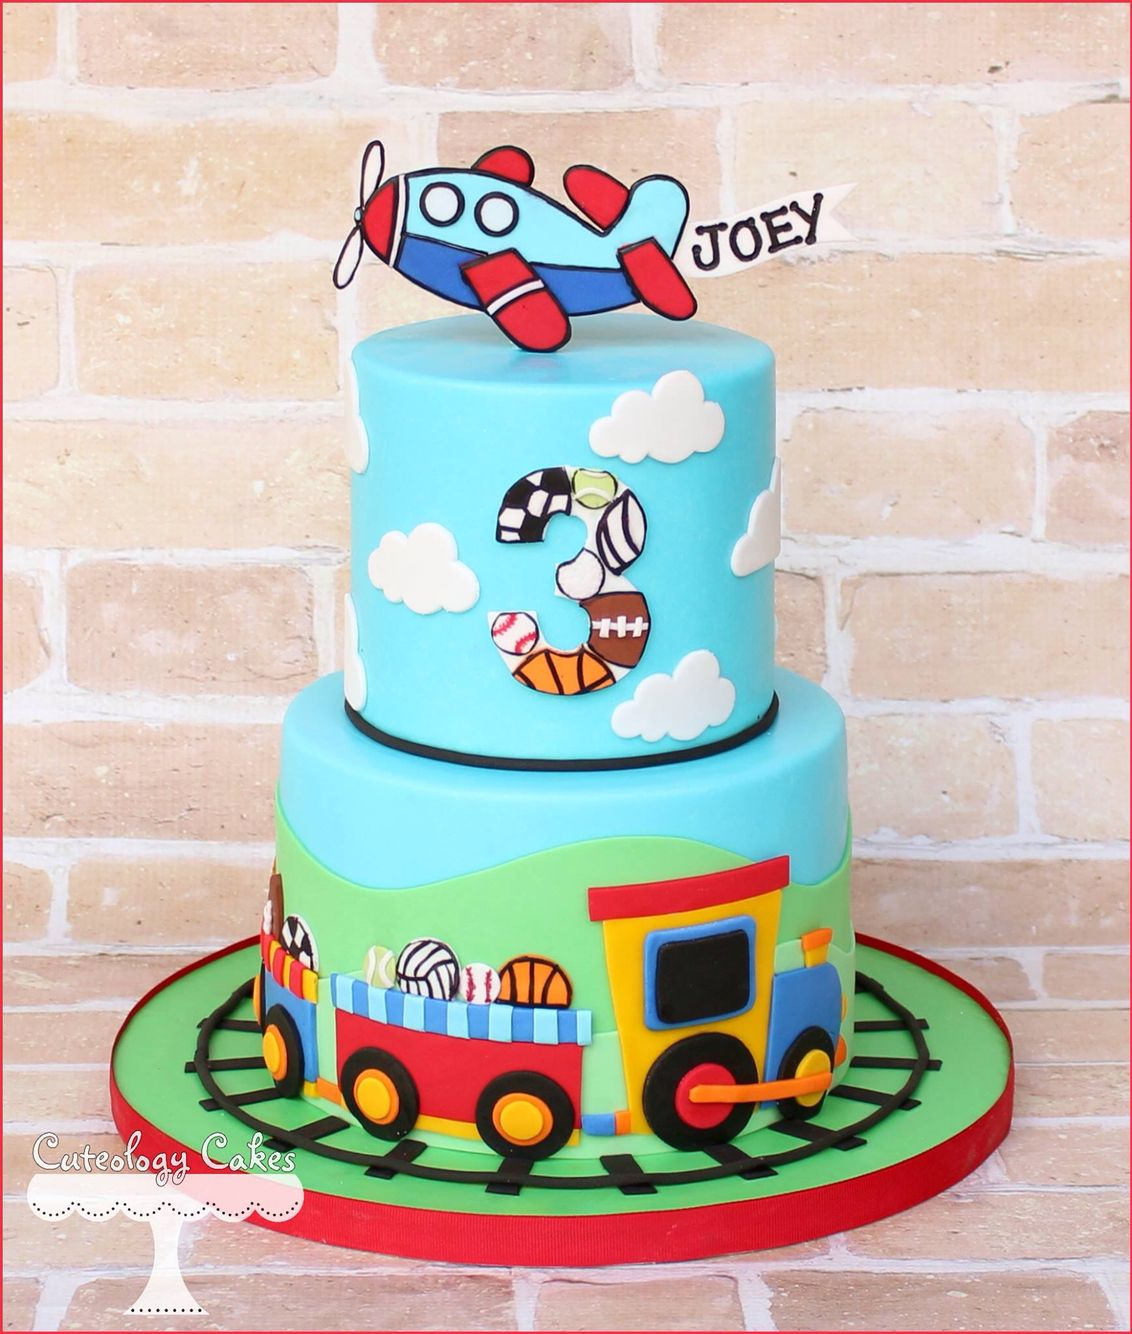 Boy sports, planes, and trains cake